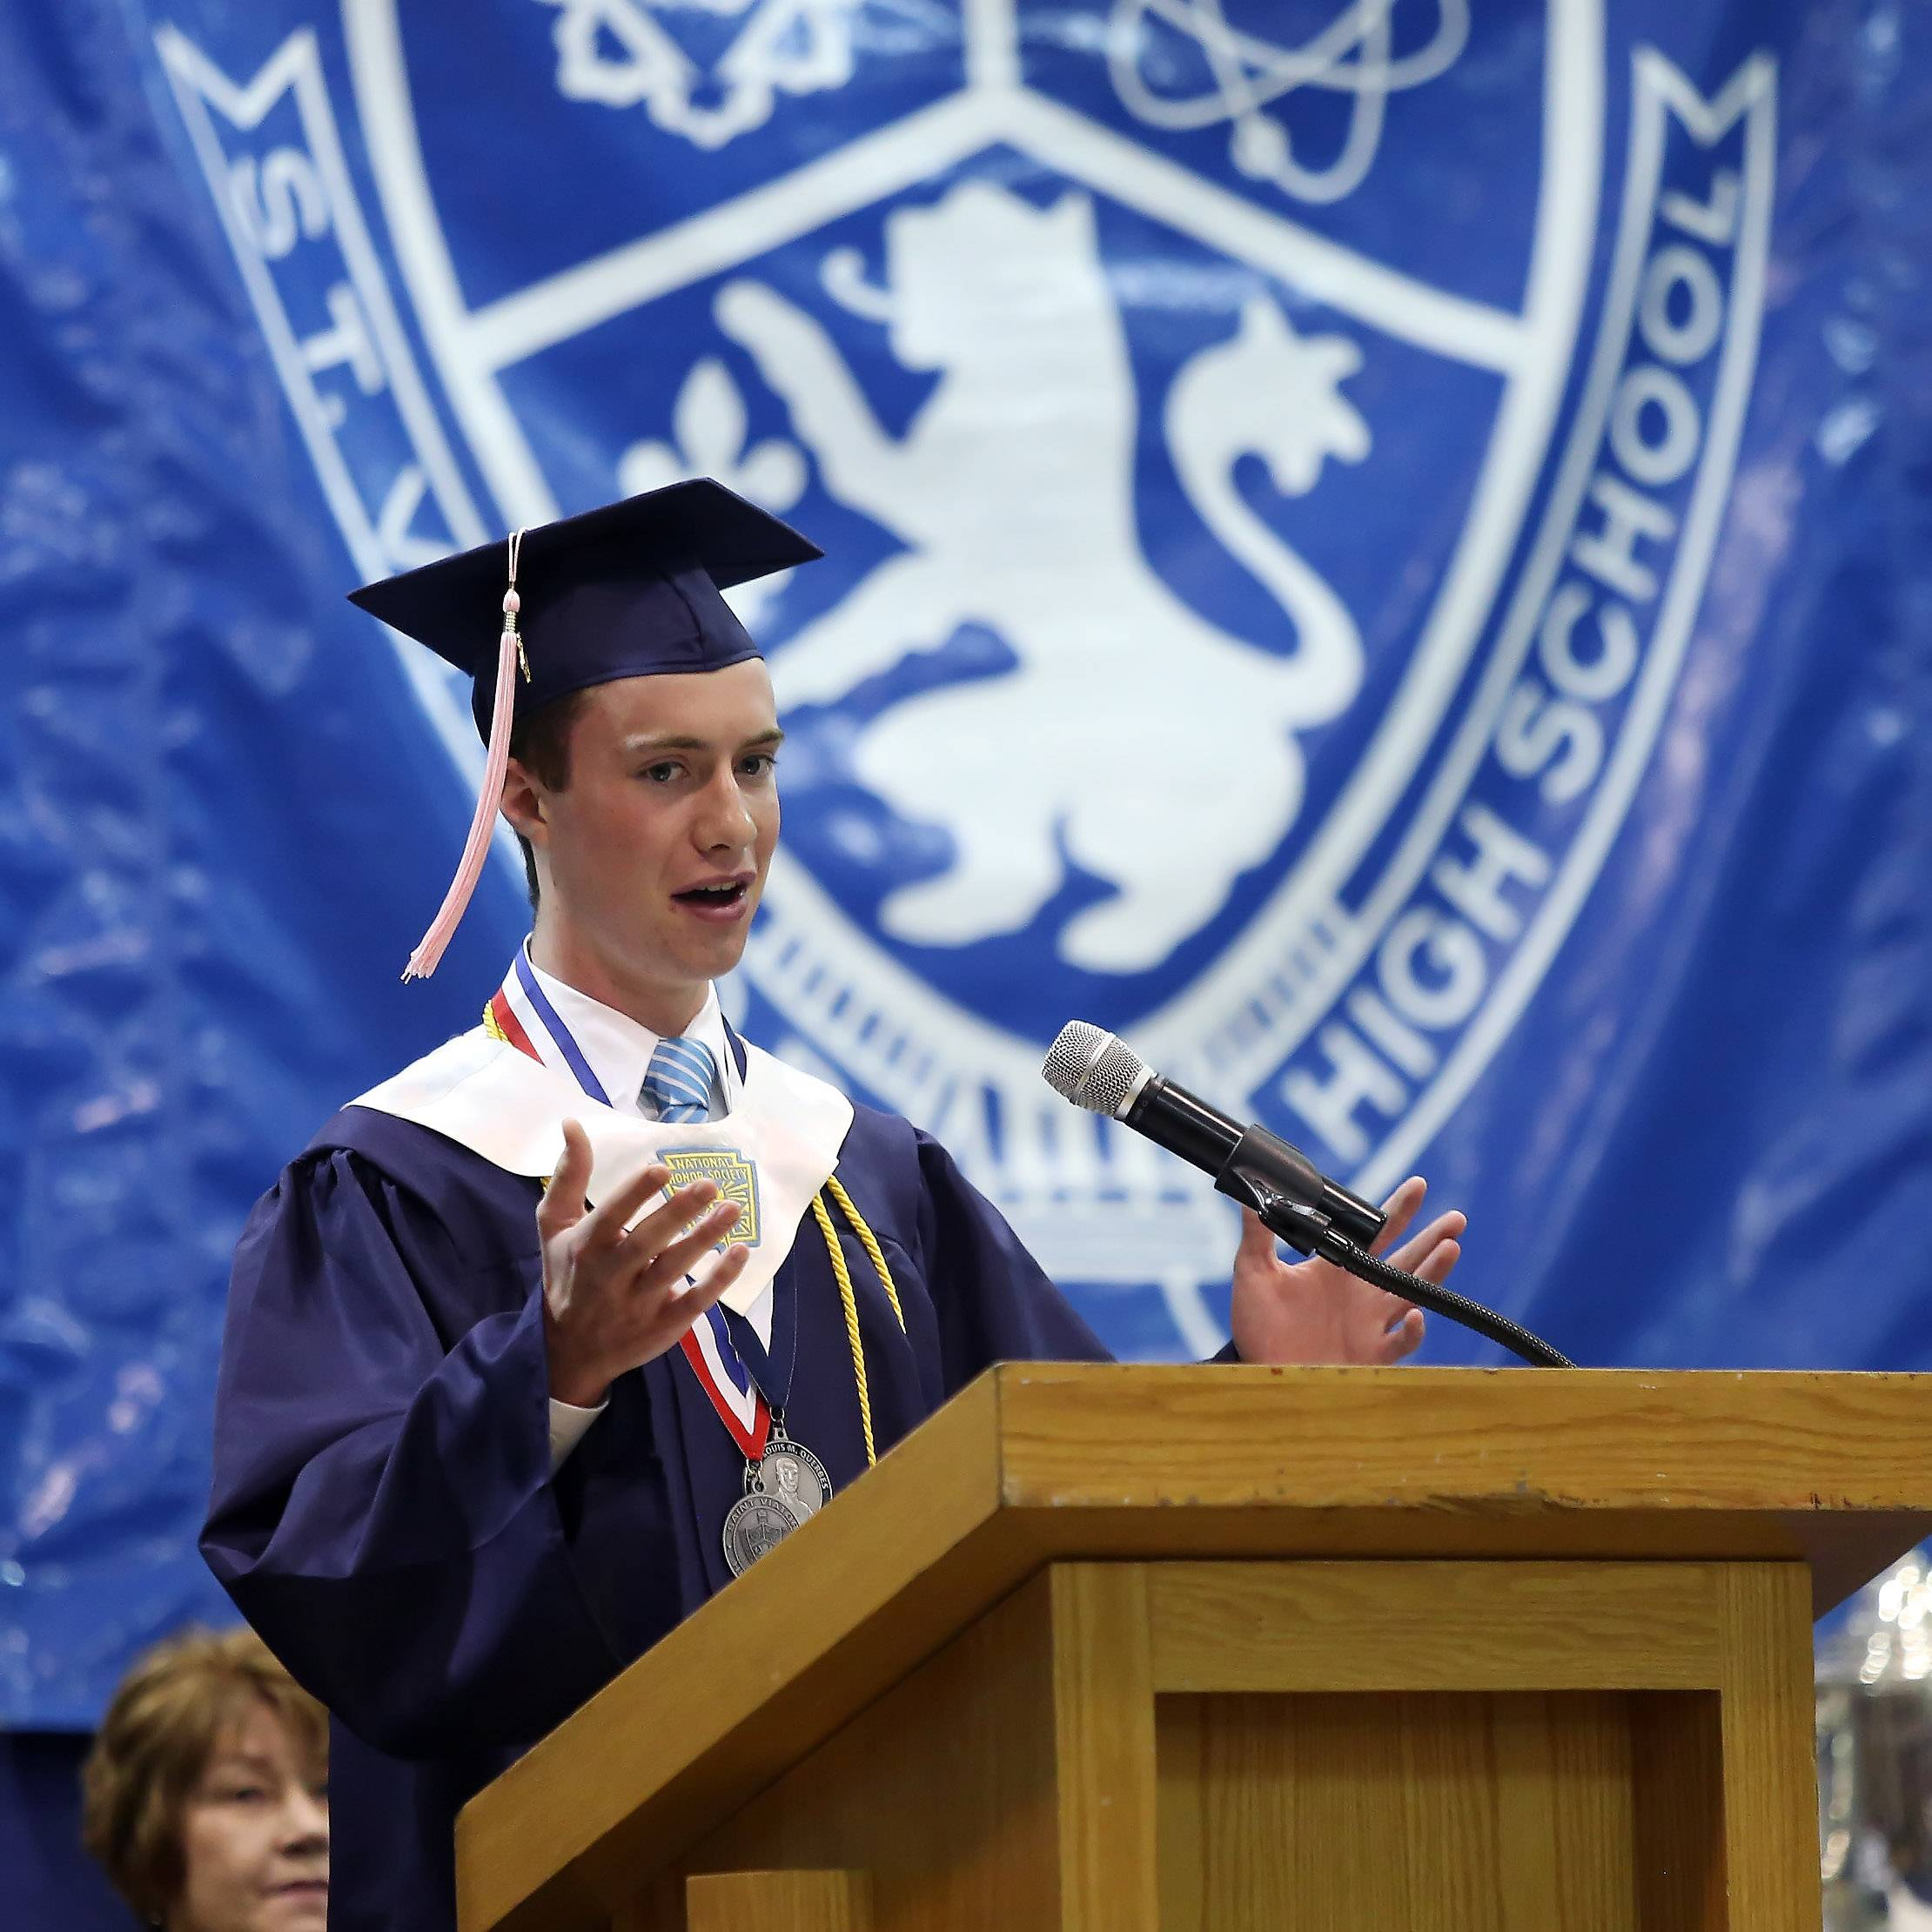 Valedictorian Tyler Harris gives his speech during the 51st Annual Commencement Sunday at St. Viator High School In Arlington Heights. There were 250 graduating seniors receiving their diplomas this year.